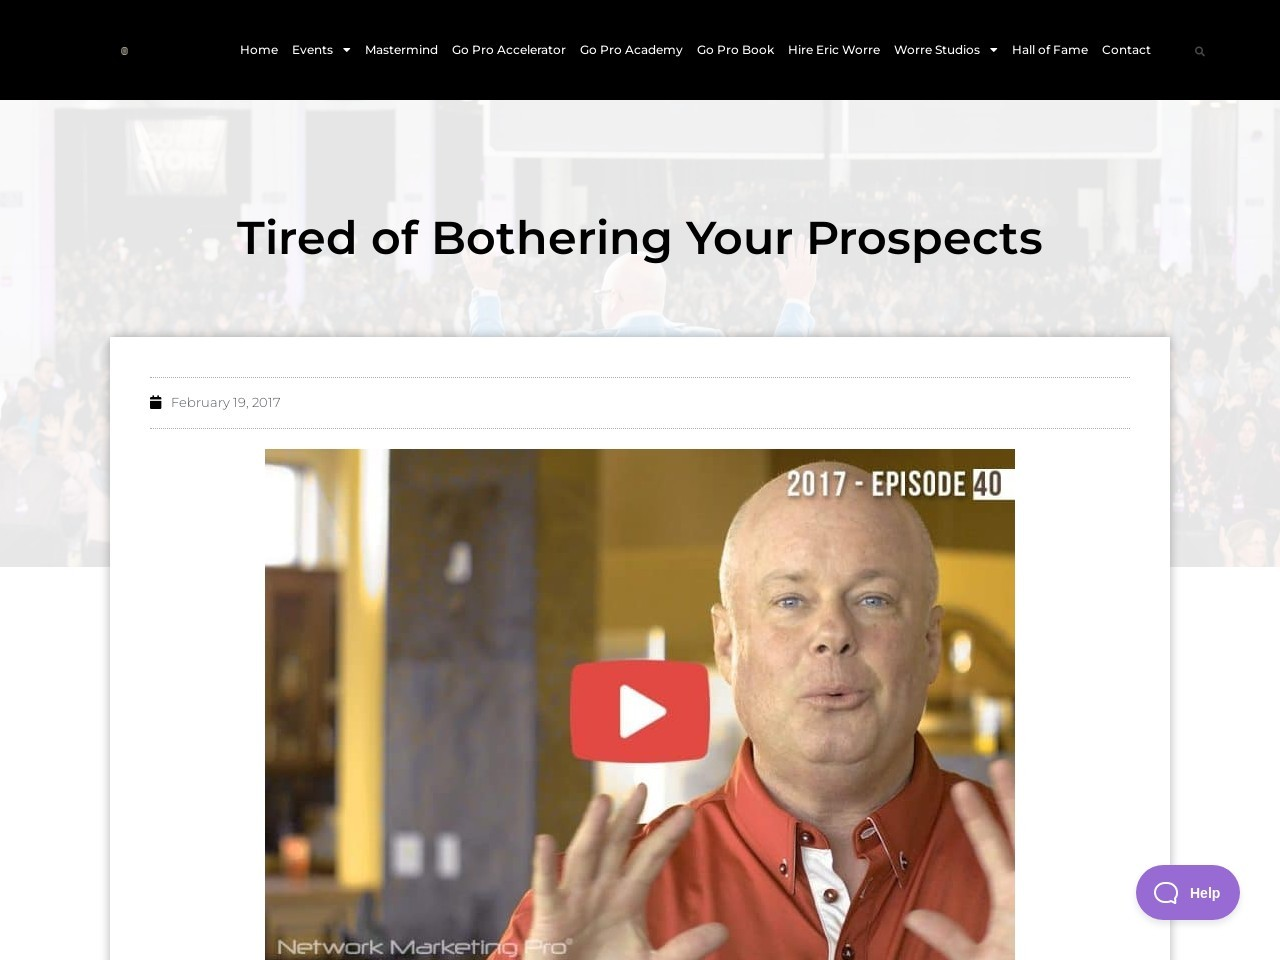 Tired of Bothering Your Prospects